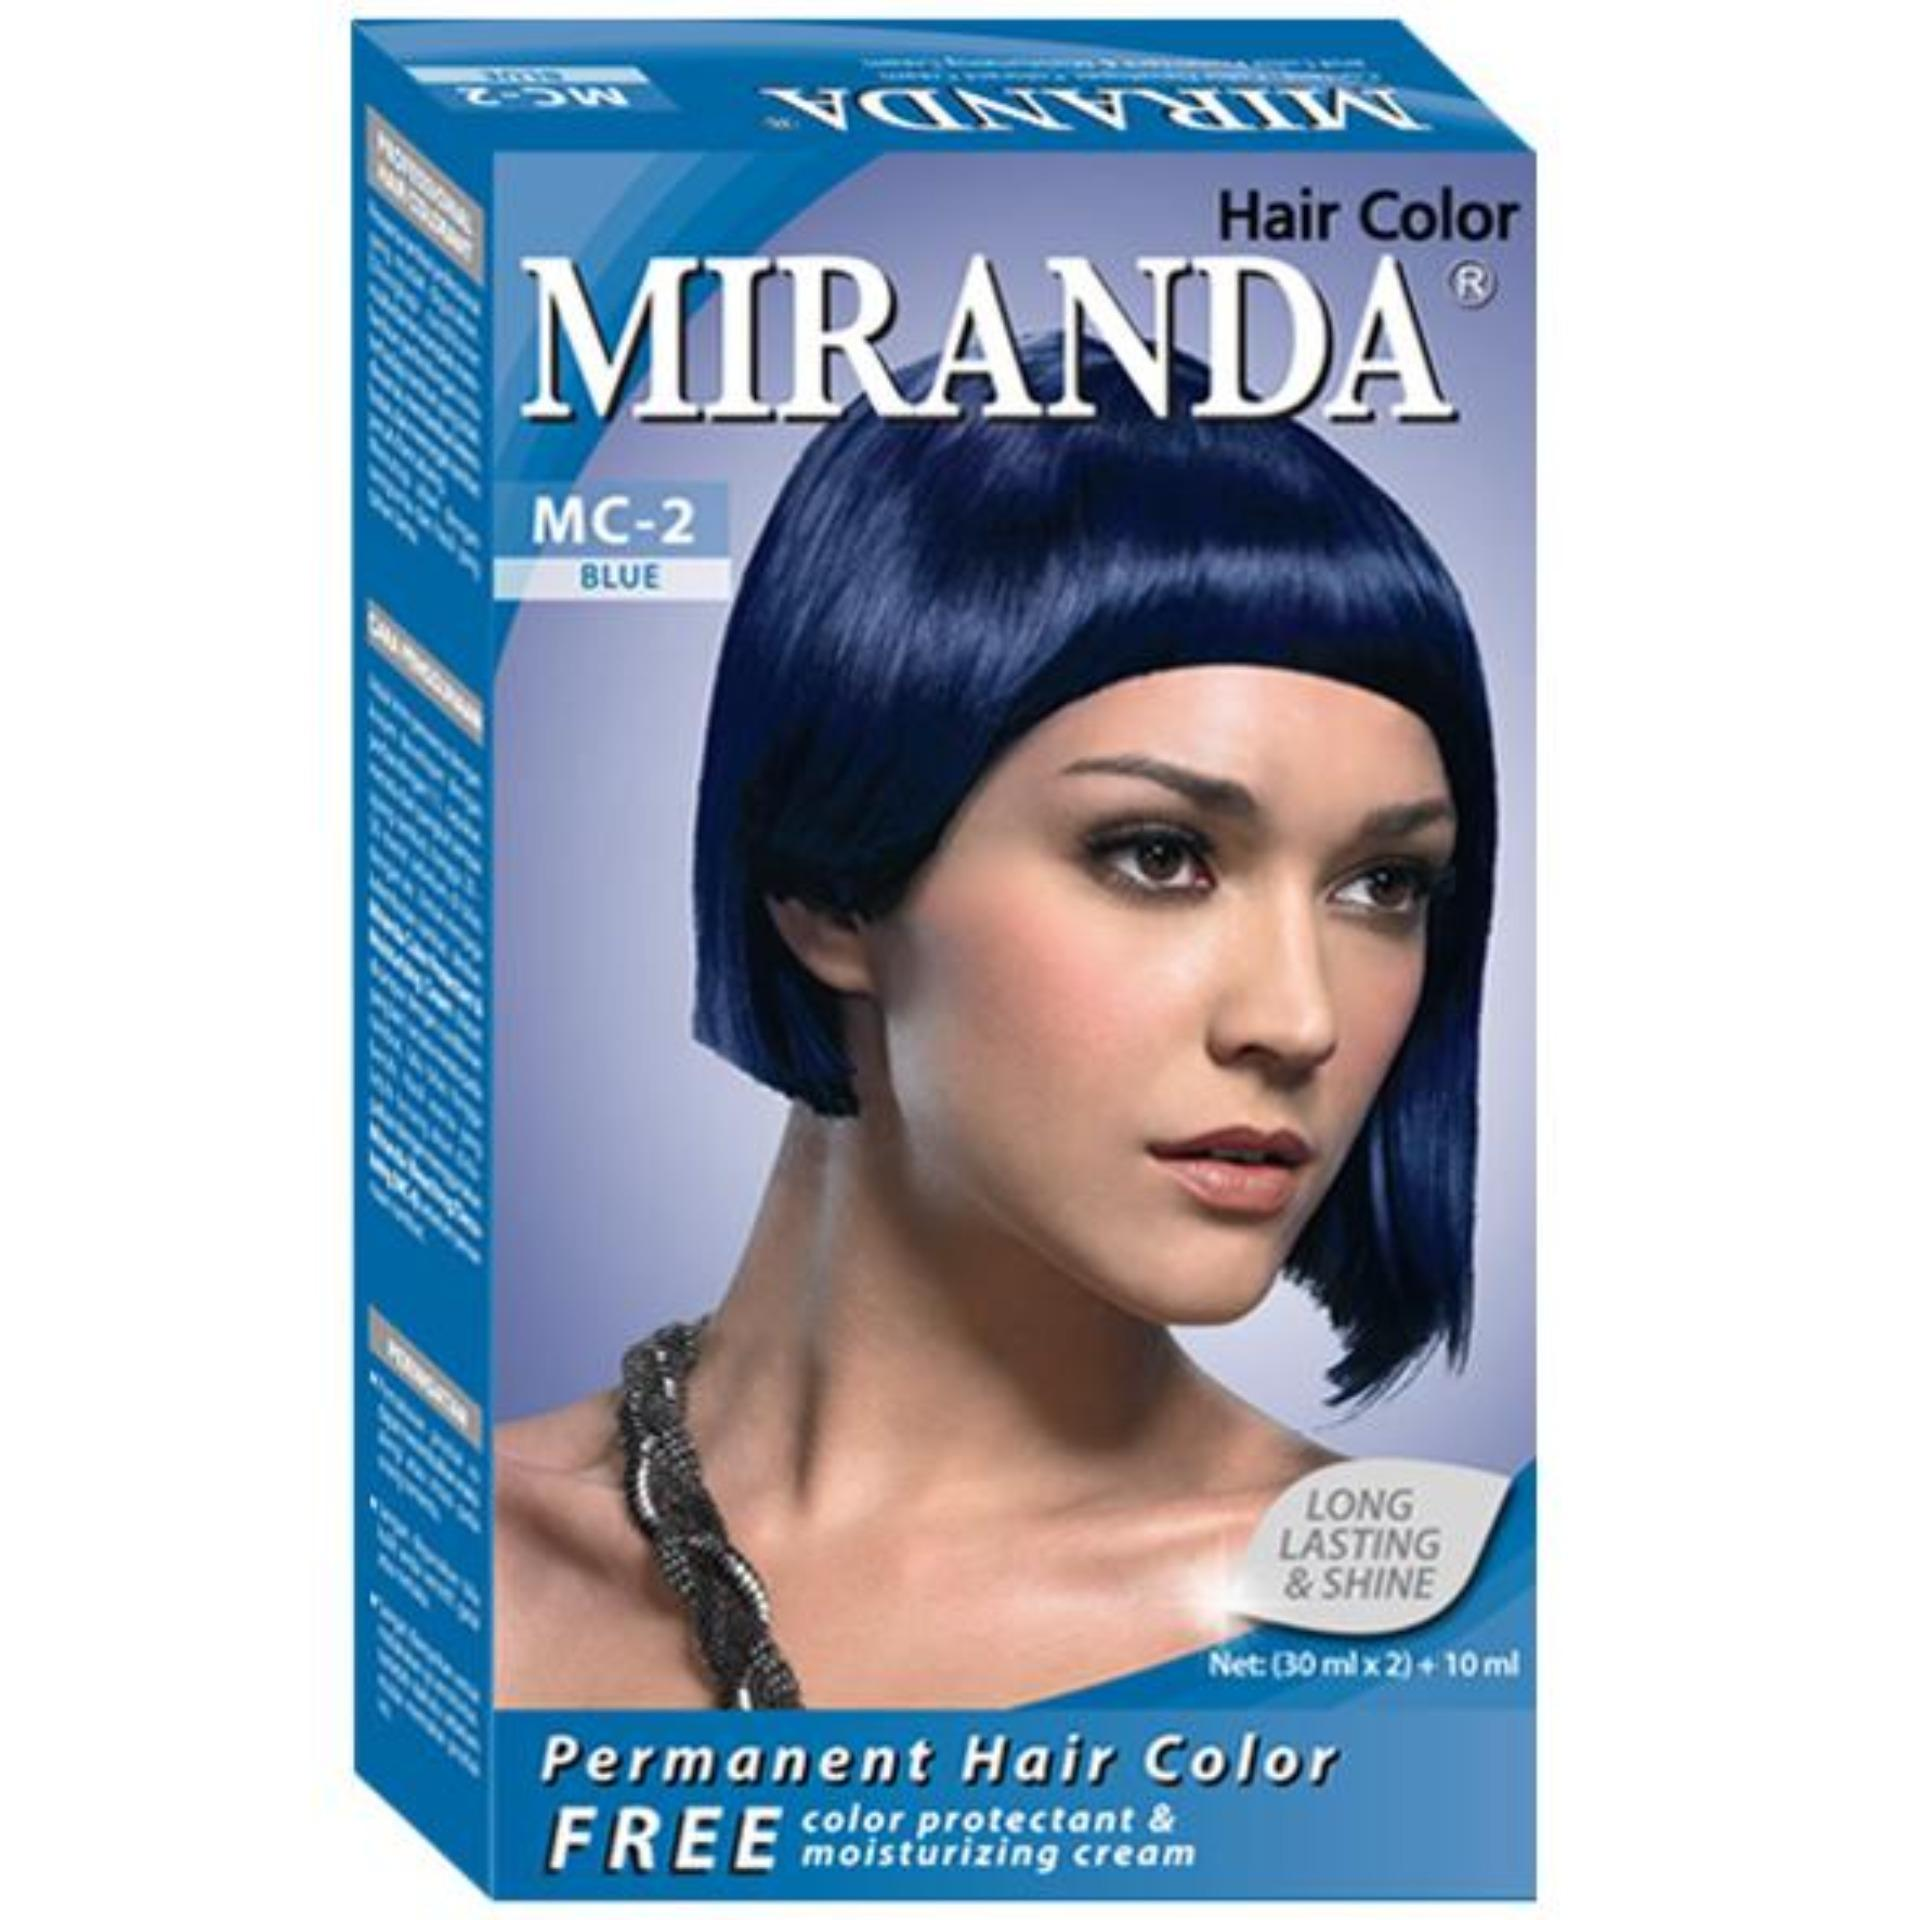 Miranda Permanent Hair Color Cat Rambut MC-2 - Blue